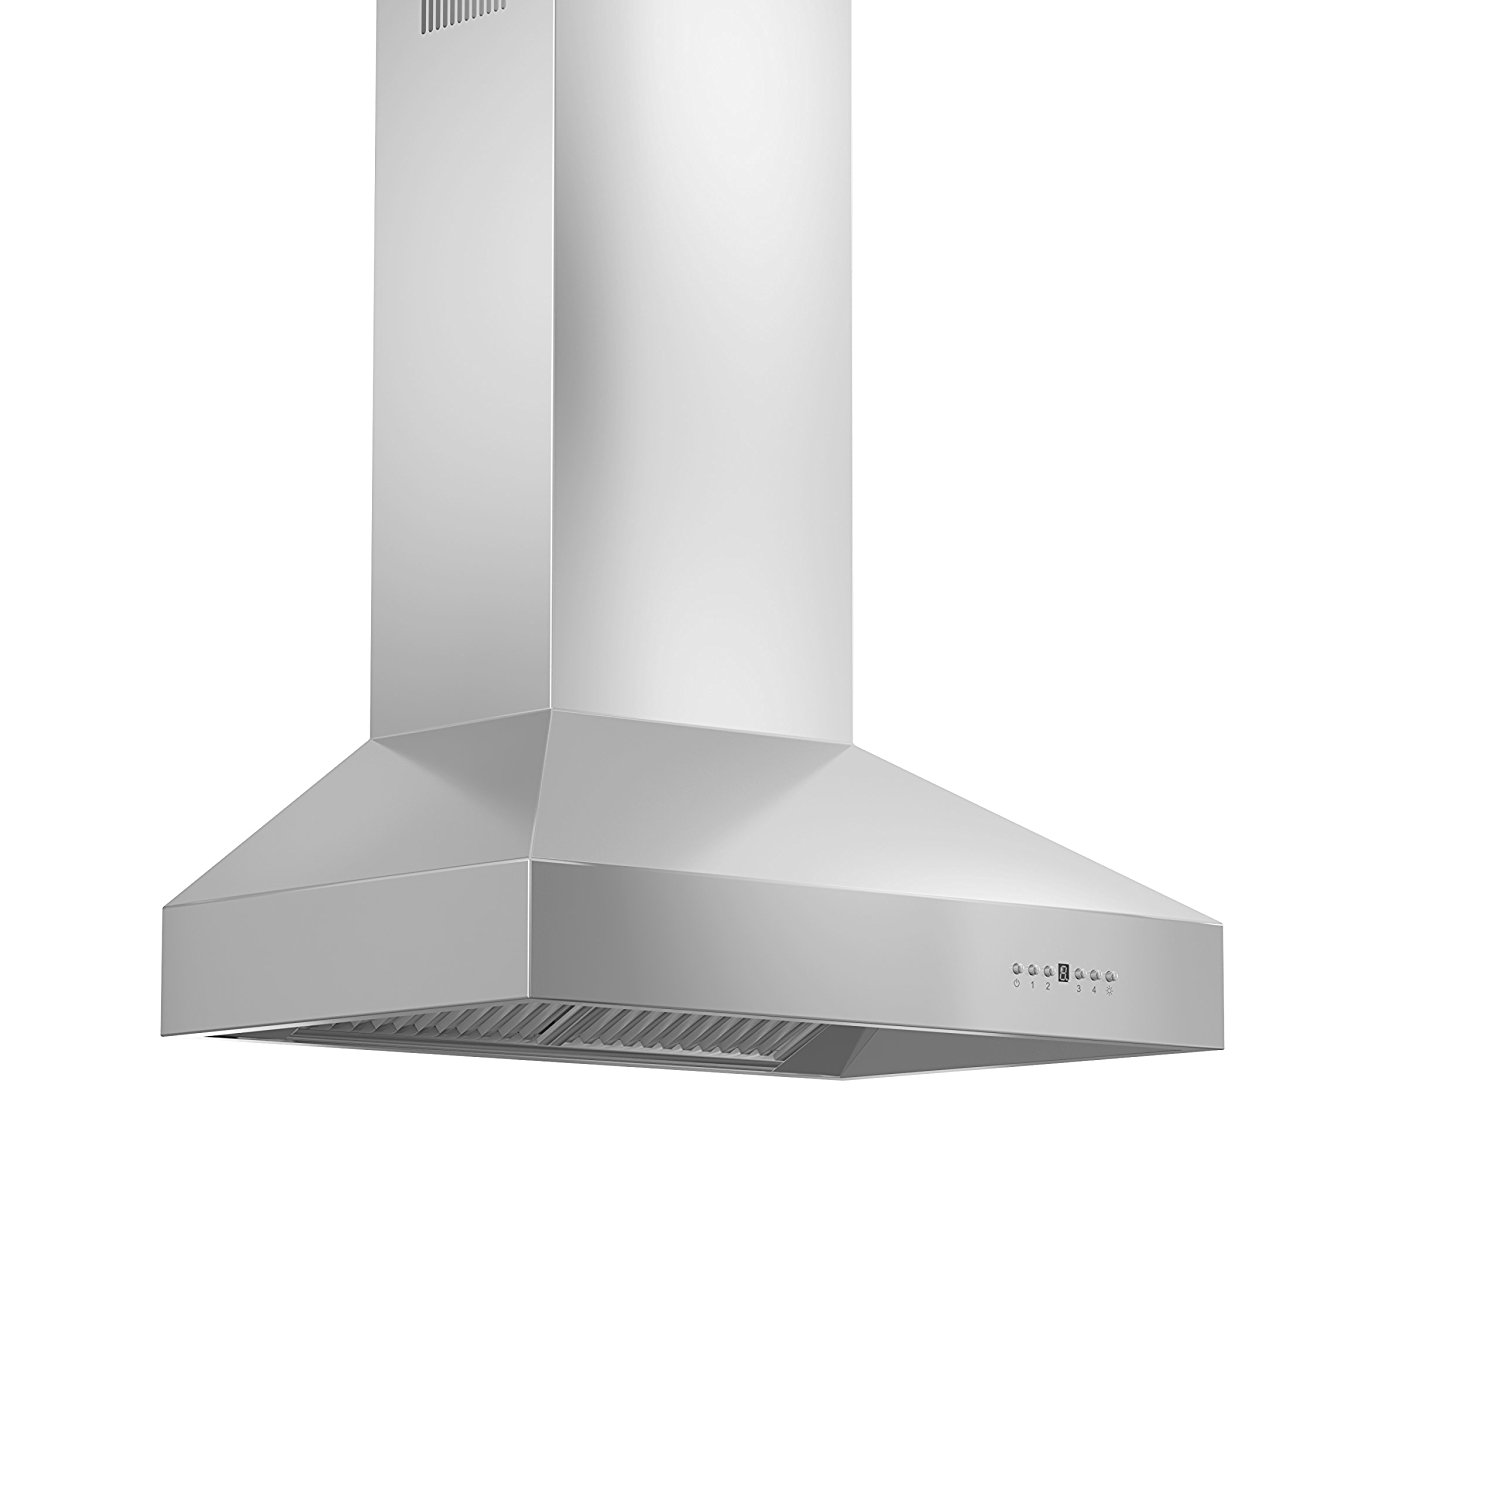 "1200 CFM Ducted Wall Mounted Range Hood Size: 16.38"" H x 42"" W x 27.5"" D"